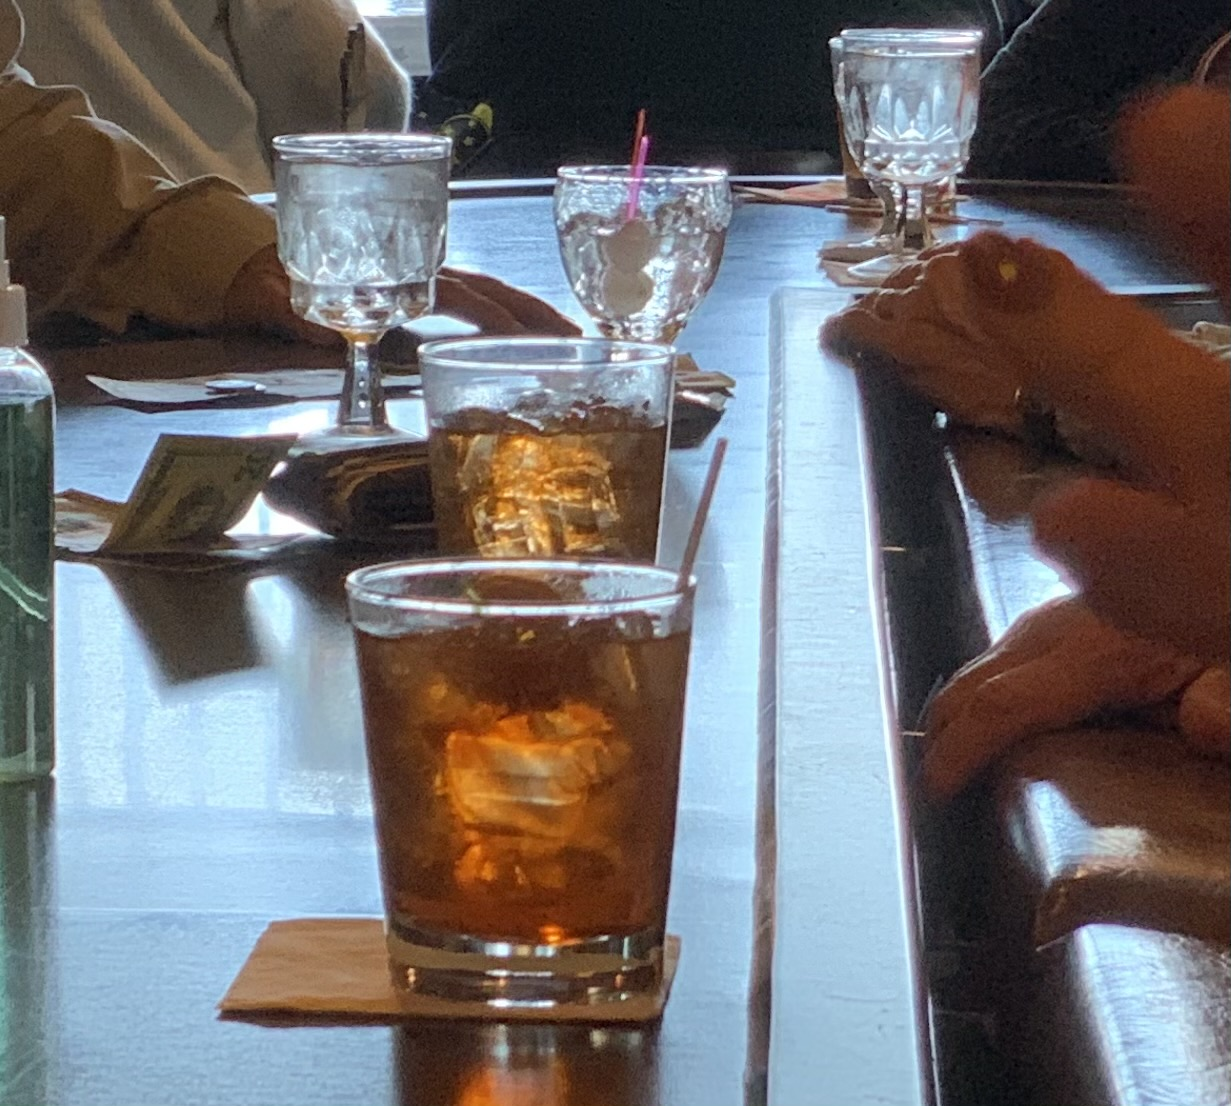 The Spinning Wheel Inn has been known for its steak dinners and old fashioneds by Shawano County residents. Customers came in for one last old fashioned at the Spinning Wheel on April 29 before the Lemhouses leave.Luke Reimer | NEW Media